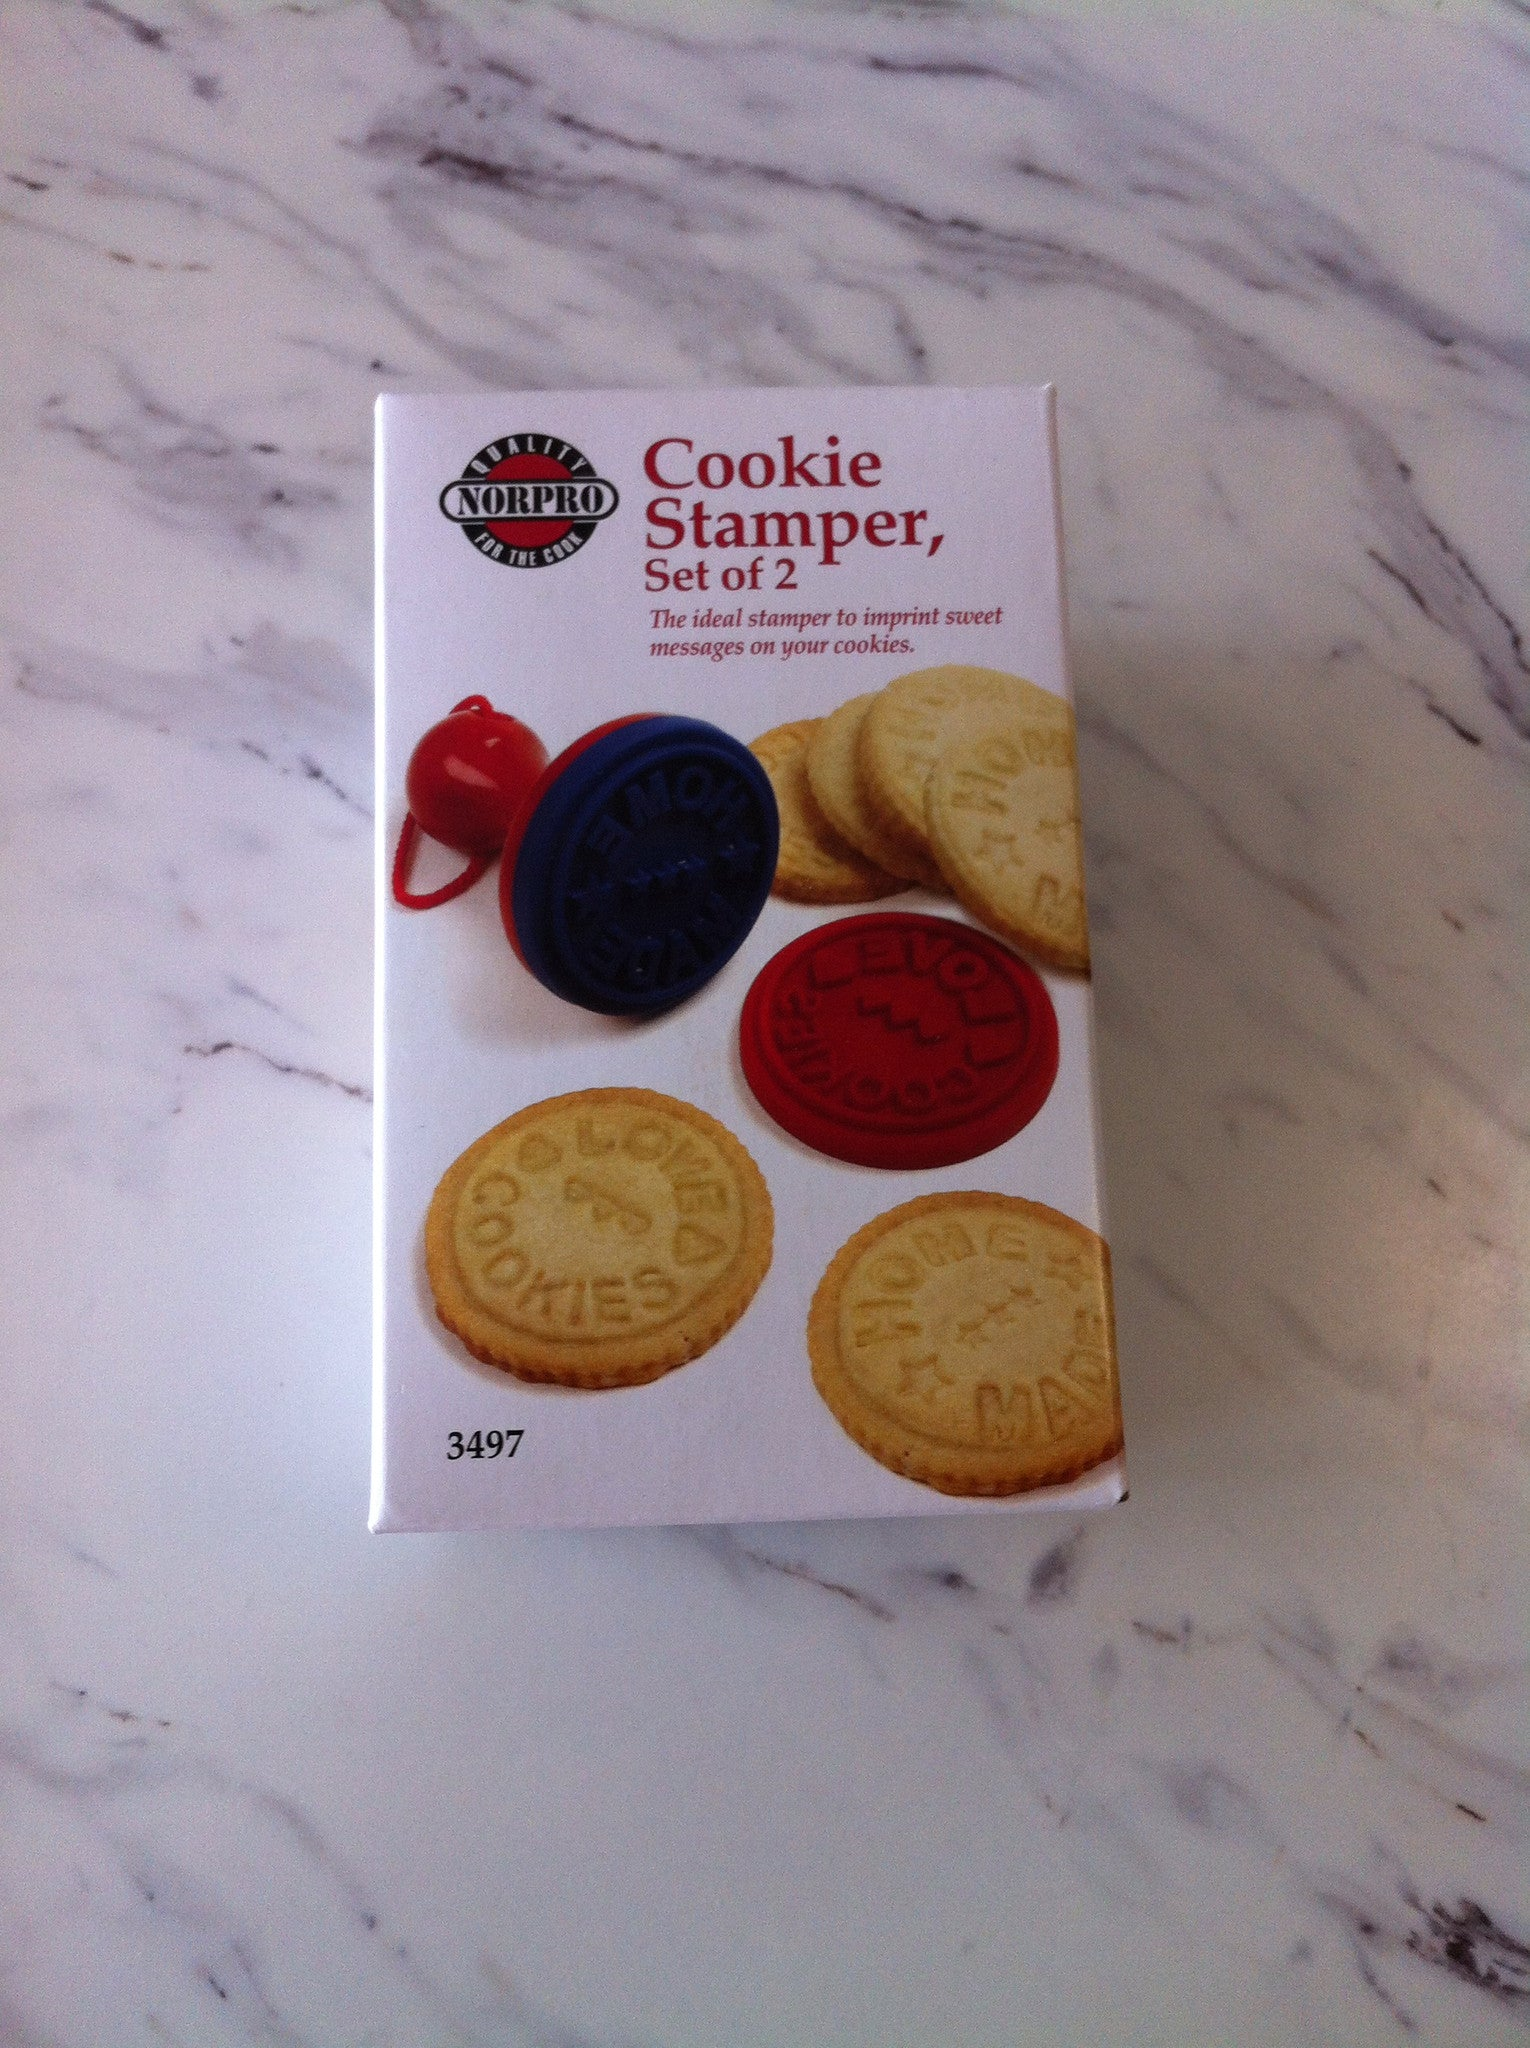 Cookie Stamper, set of 2